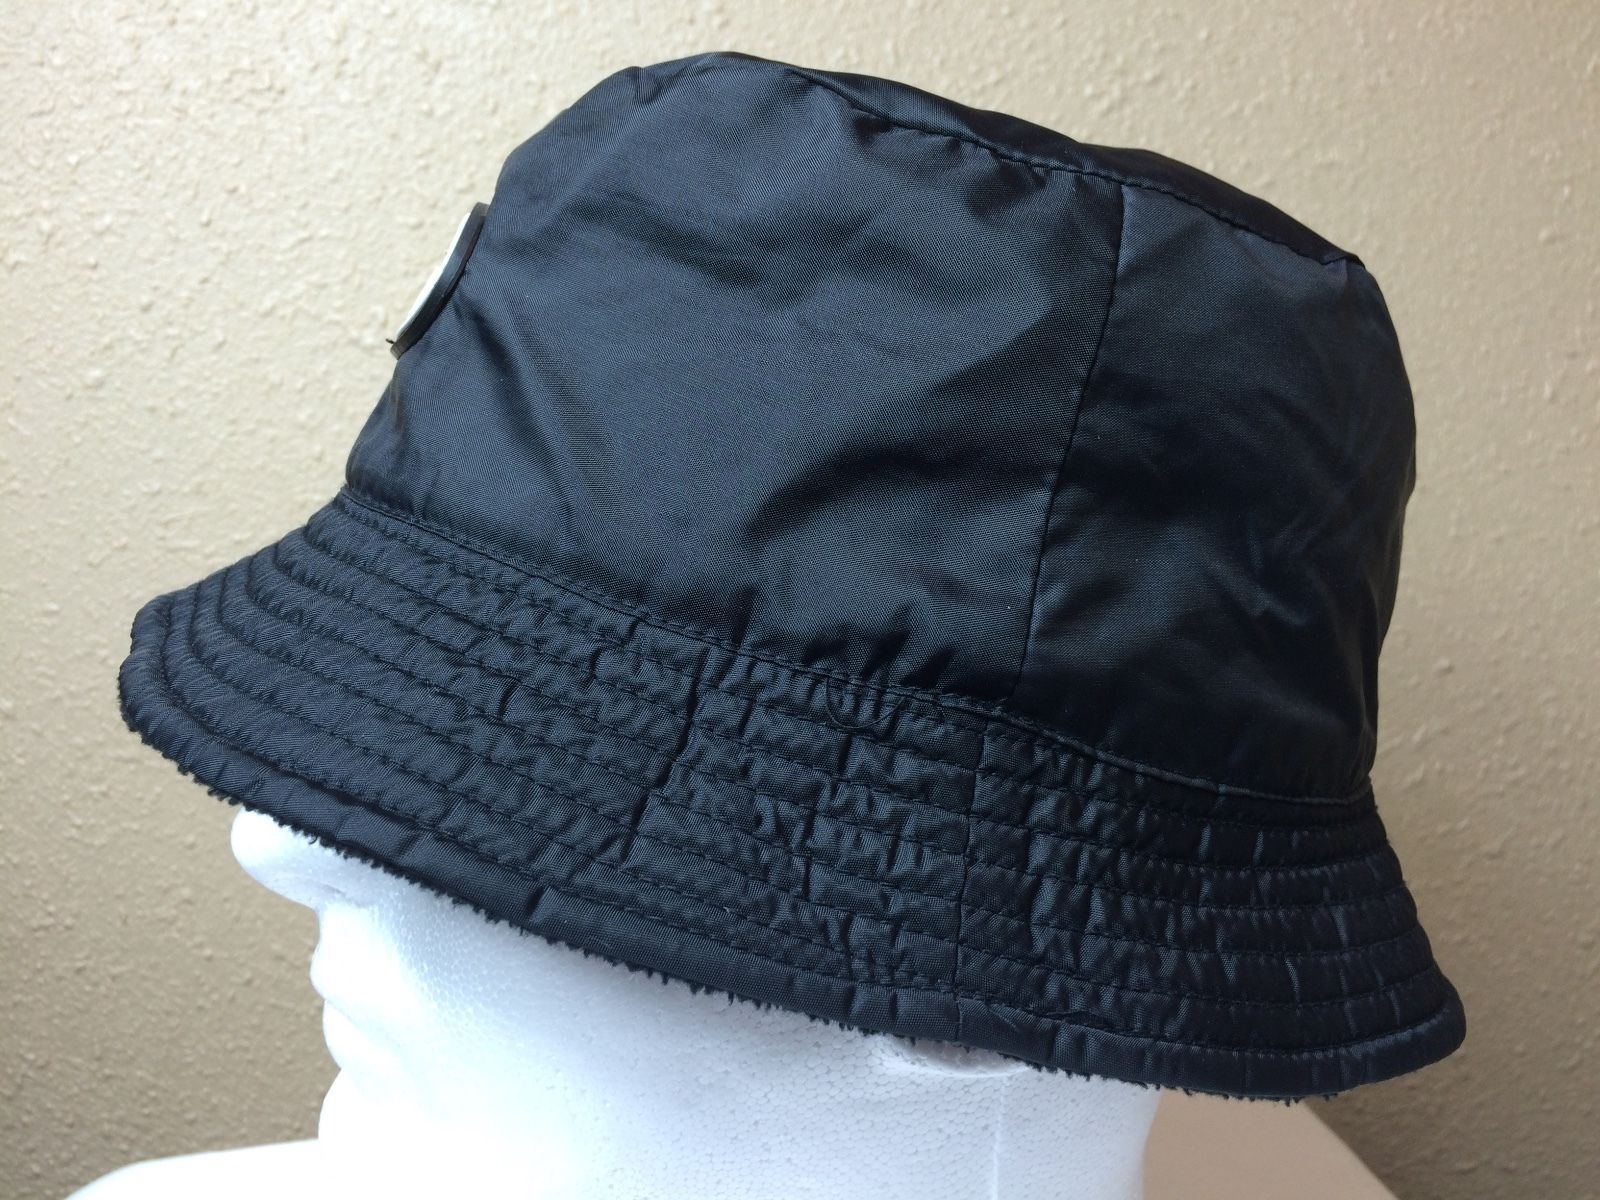 085fefe05f6 Guinness Draught Reversible Bucket Hat Poly Fleece Black Beer Rain